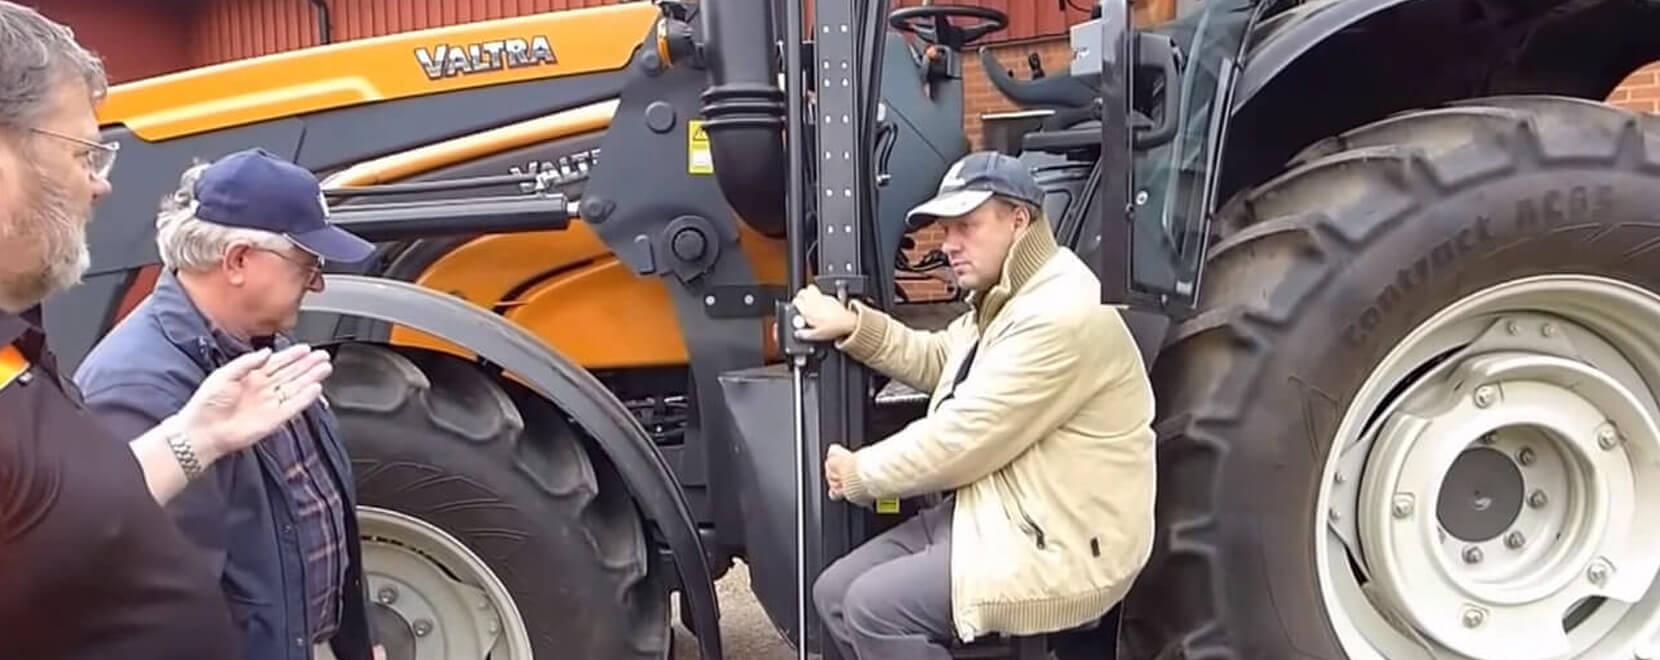 Men speaking in front of a tractor